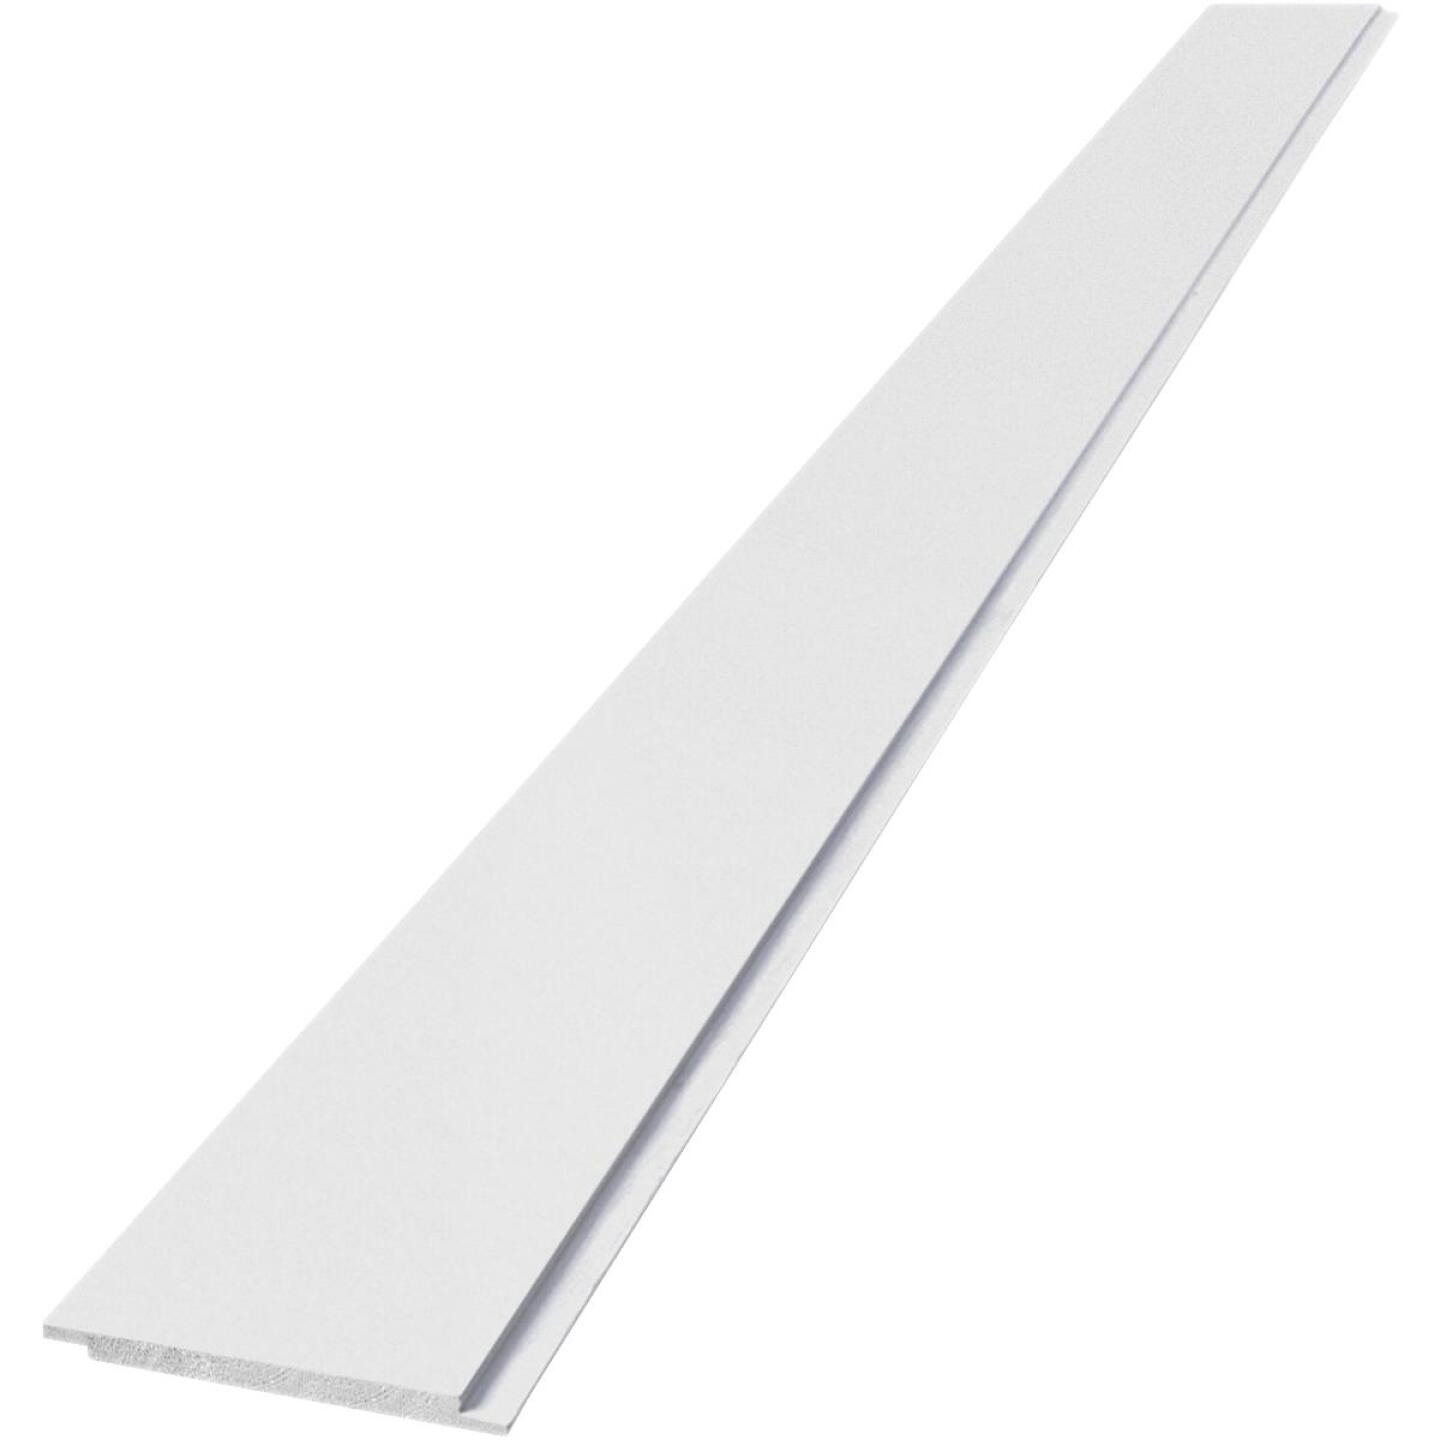 UFP-Edge Timeless Nickel Gap 8 In. W x 8 Ft. L x 1 In. Wide Primed Finger-Jointed Pine Shiplap Board (4-Pack) Image 2